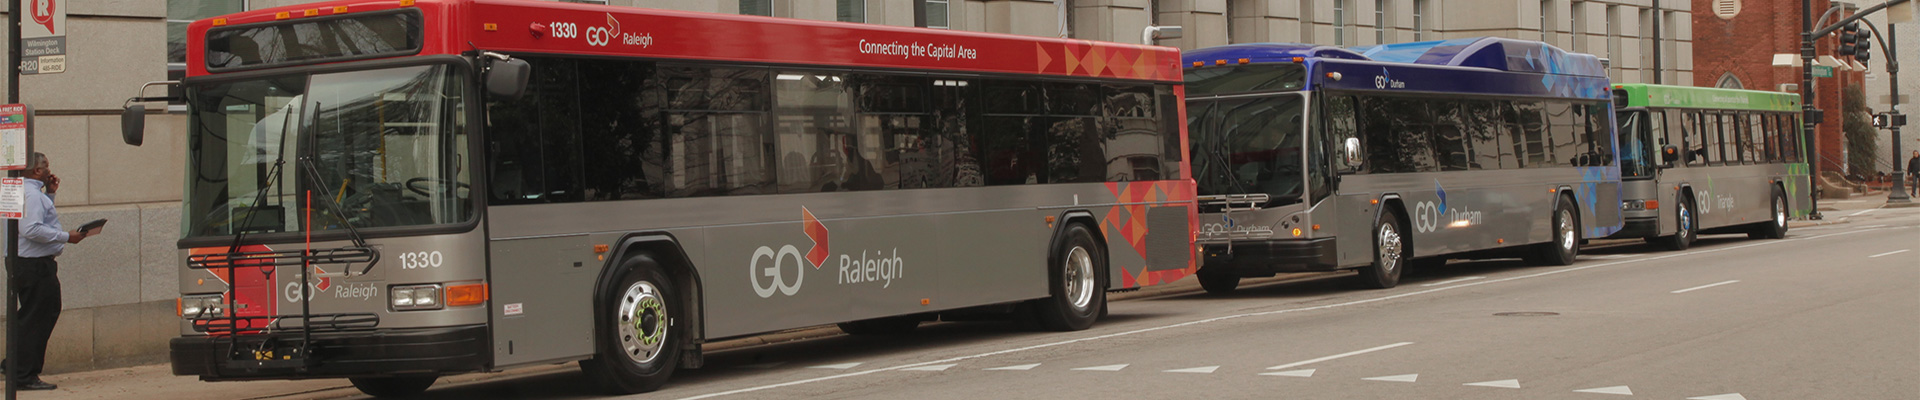 A GoRaleigh bus, a GoDurham bus and a GoTriangle bus parked next to each other